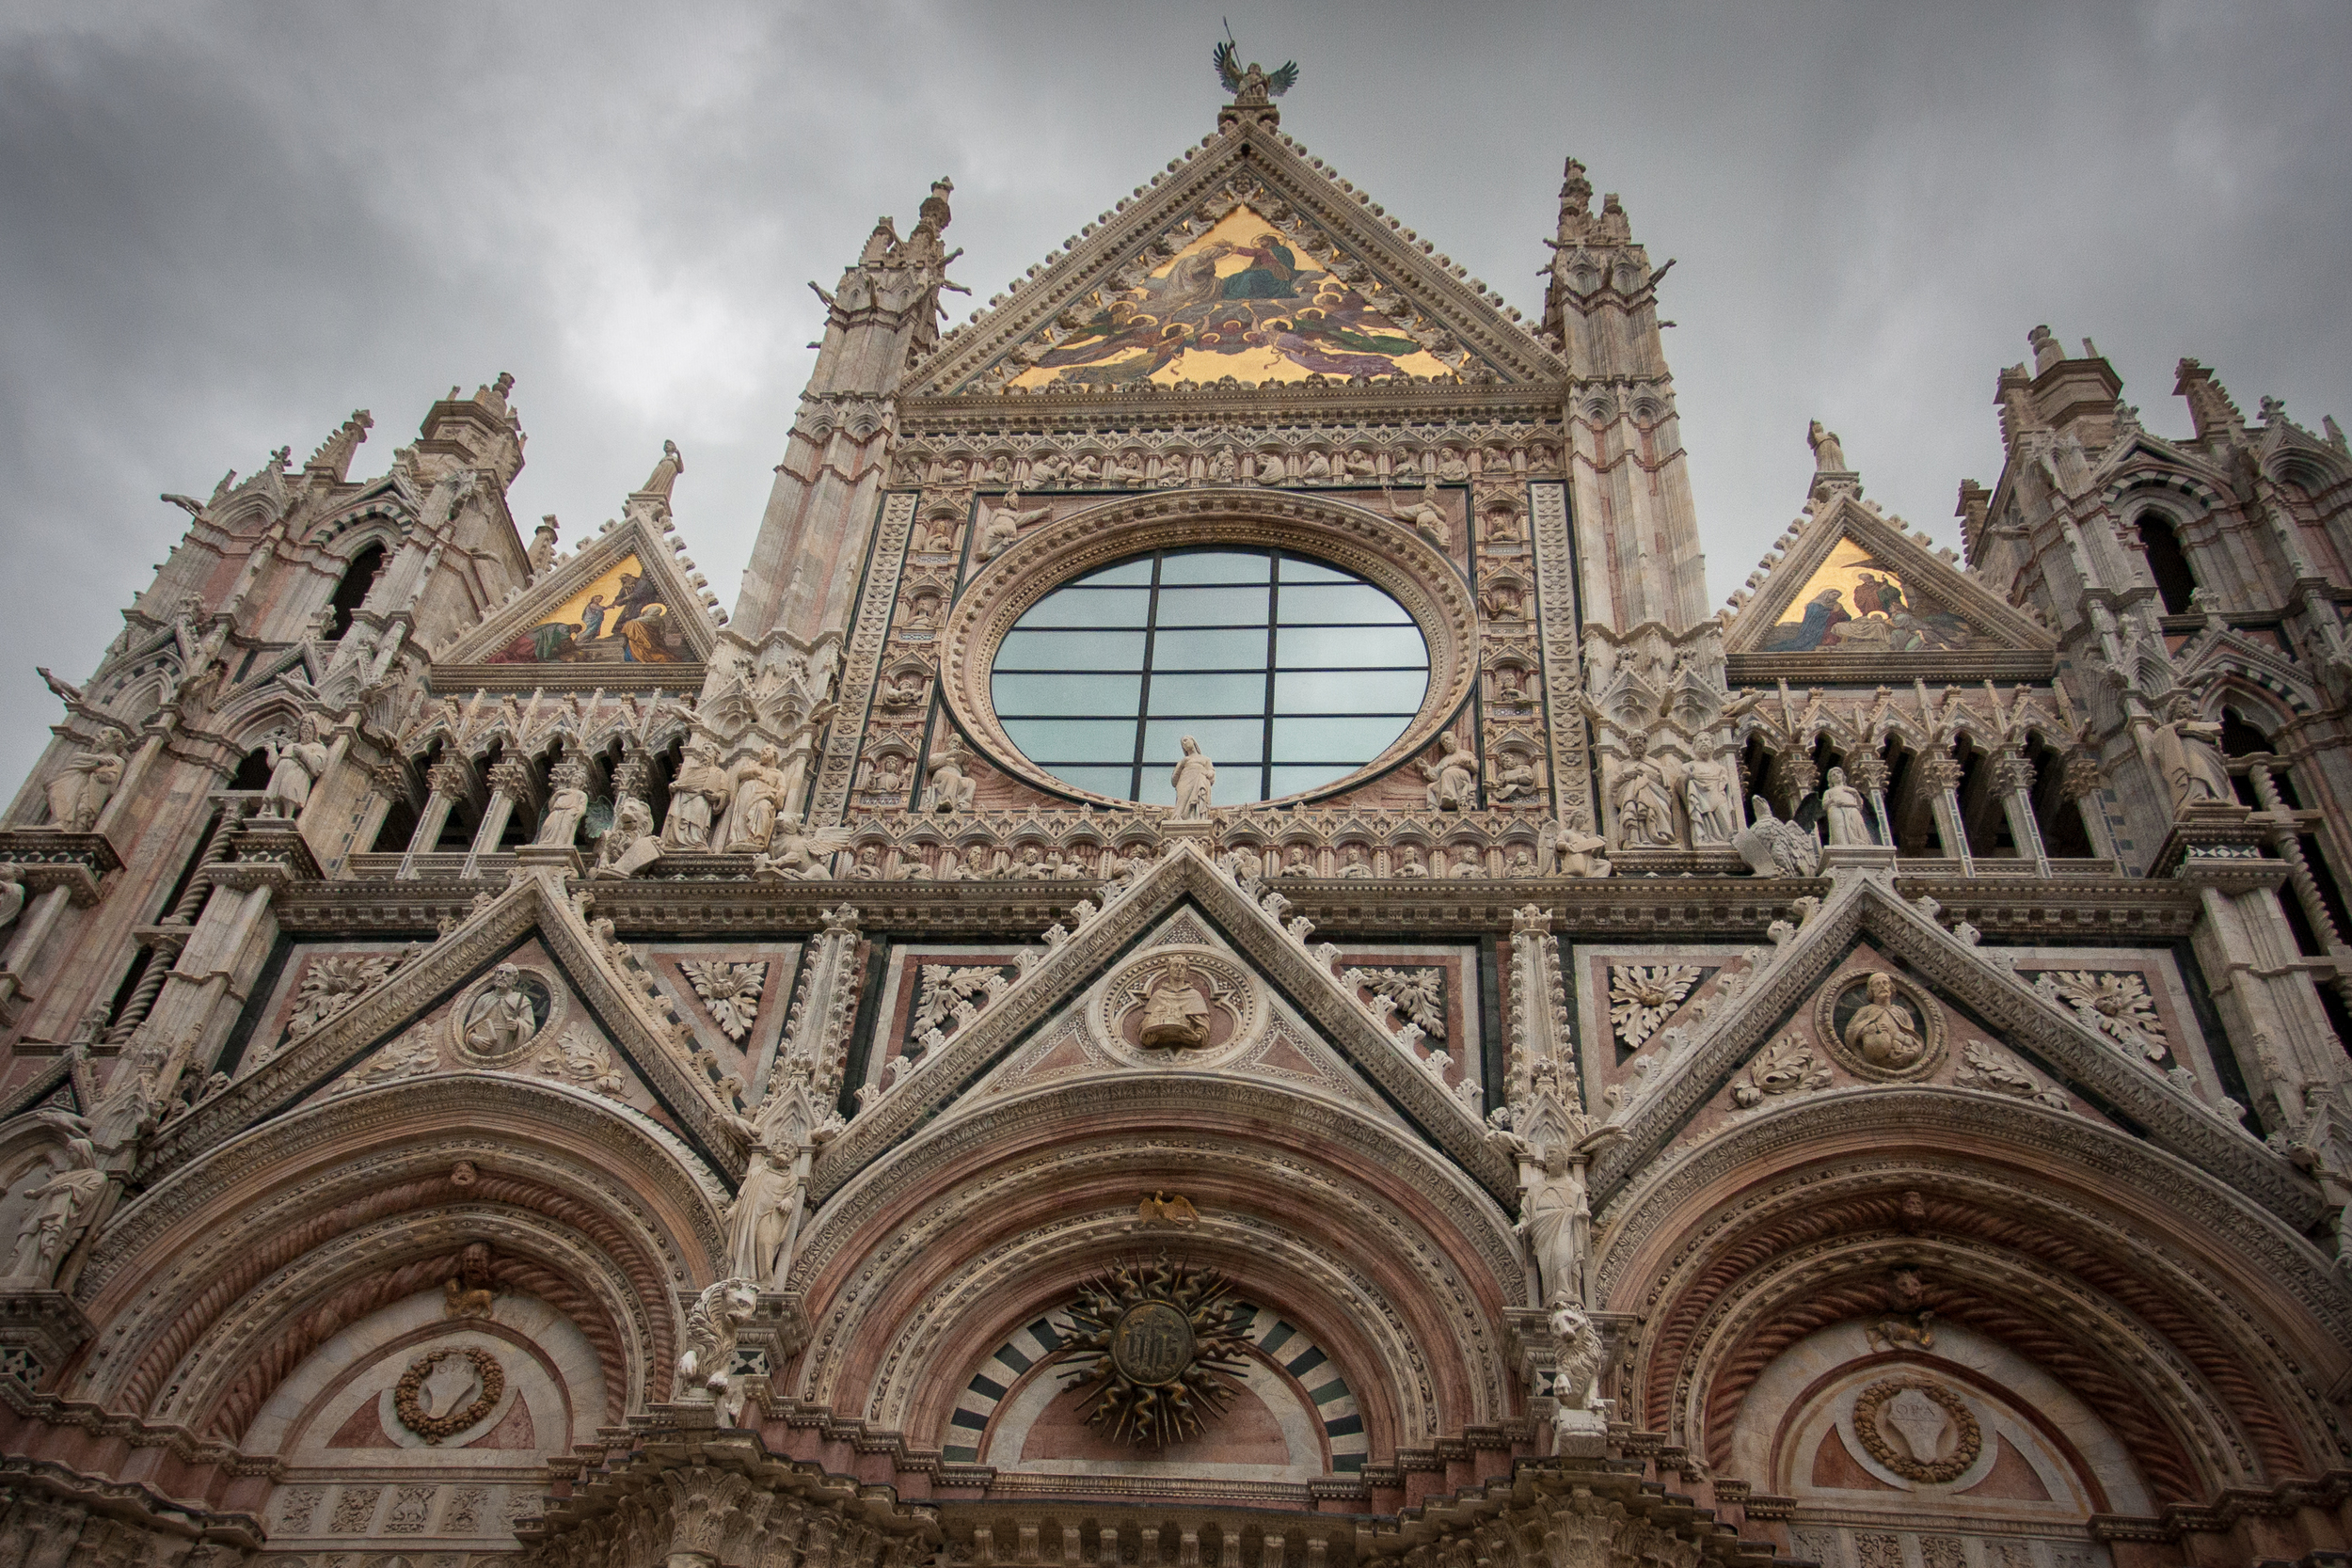 The Facade of the cathedral on an overcast day in Siena.